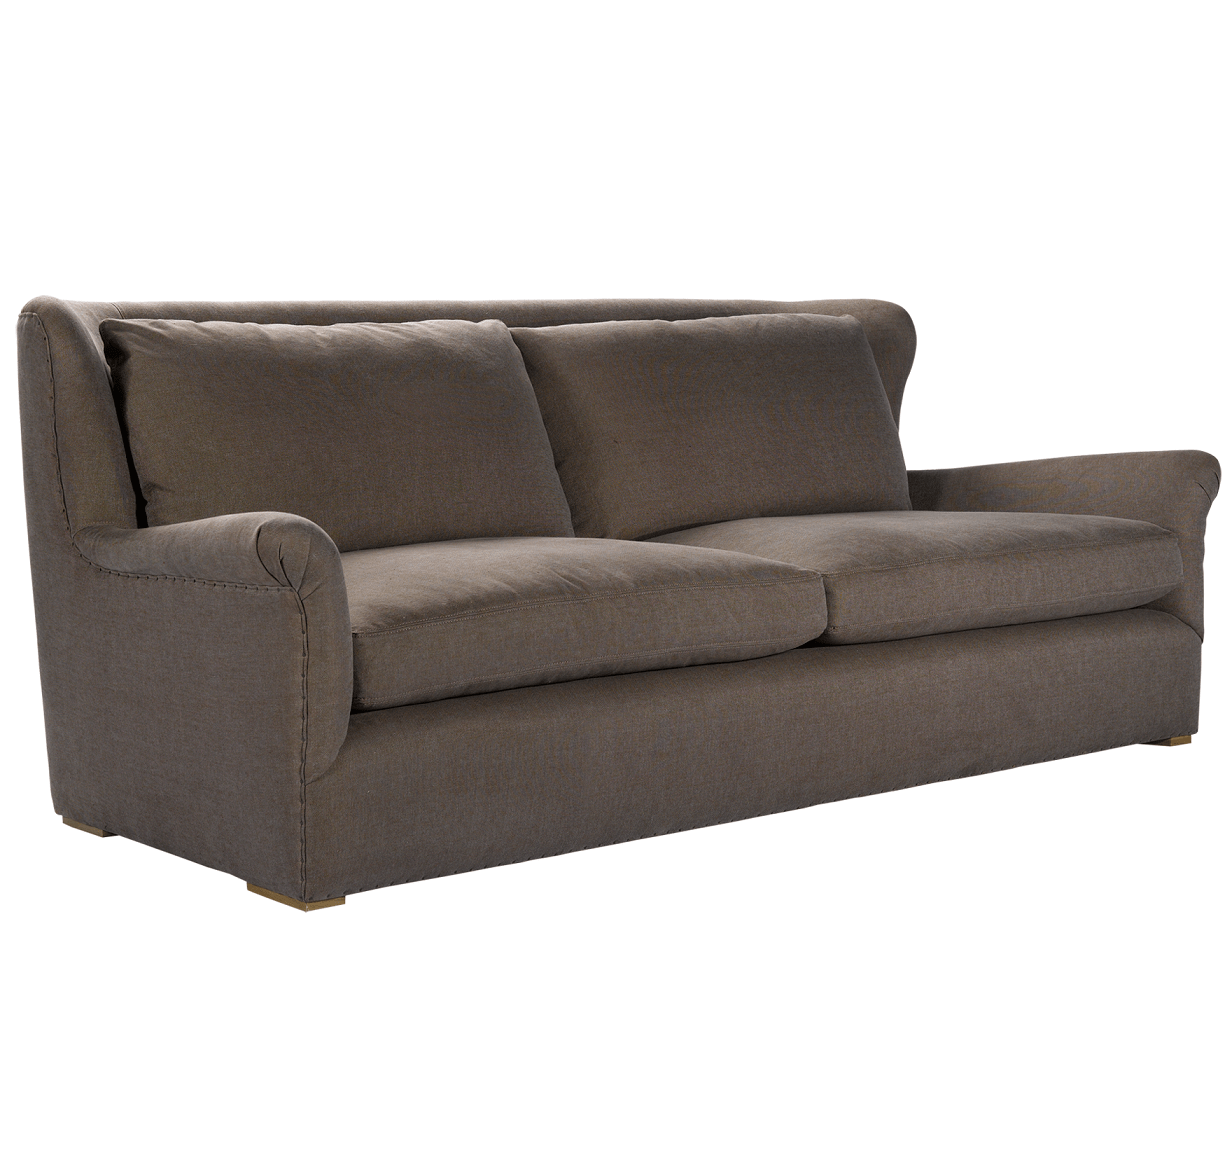 how to clean belgian linen sofa george smith reviews wing back upholstered sofas and chairs zin home